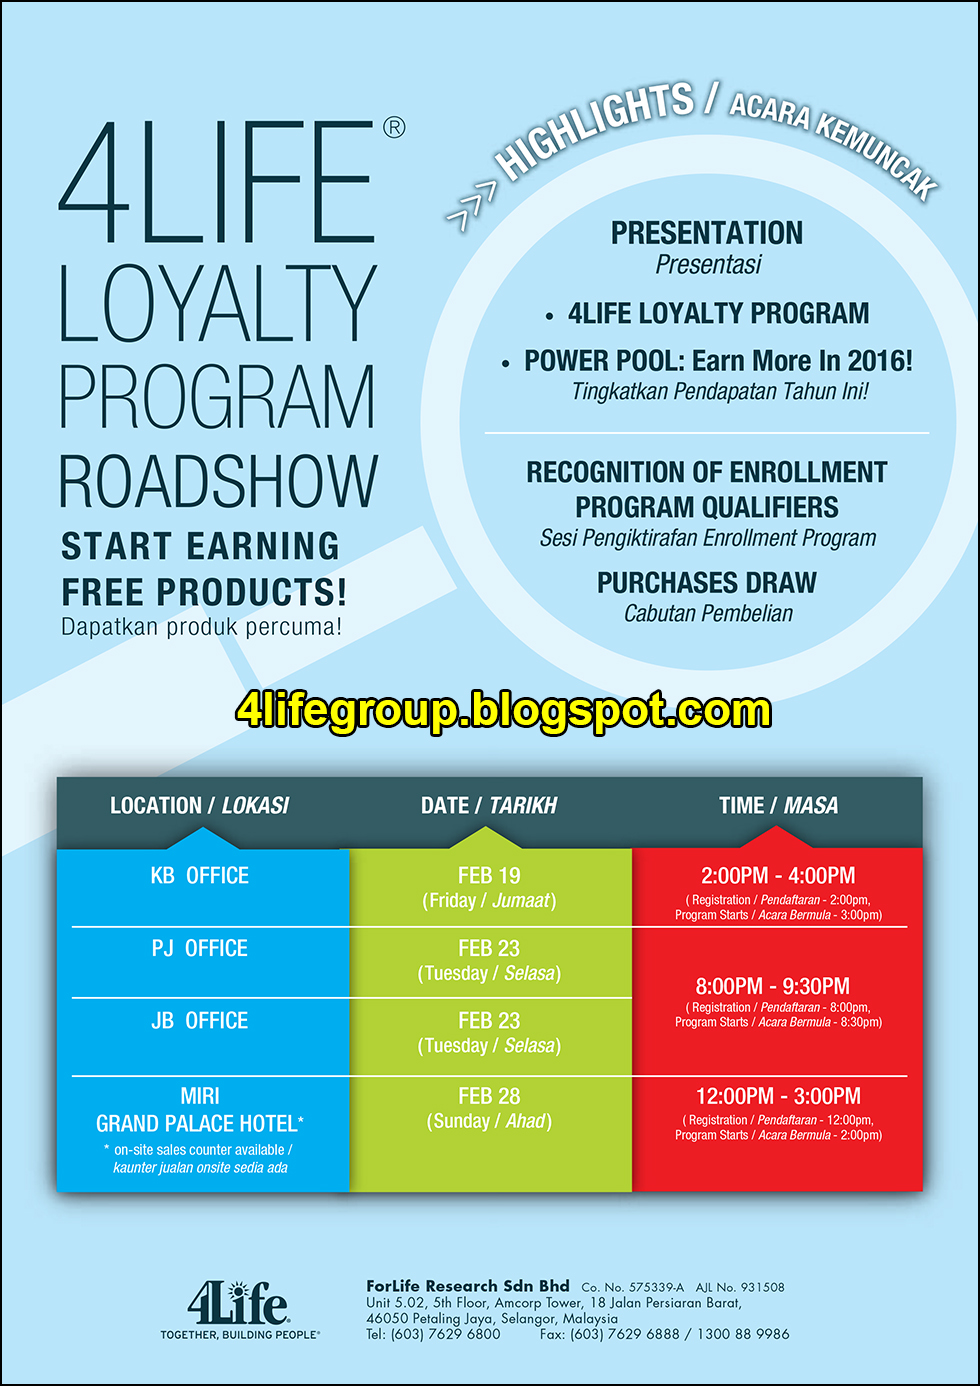 foto 4Life Loyalty Program Roadshow (1)